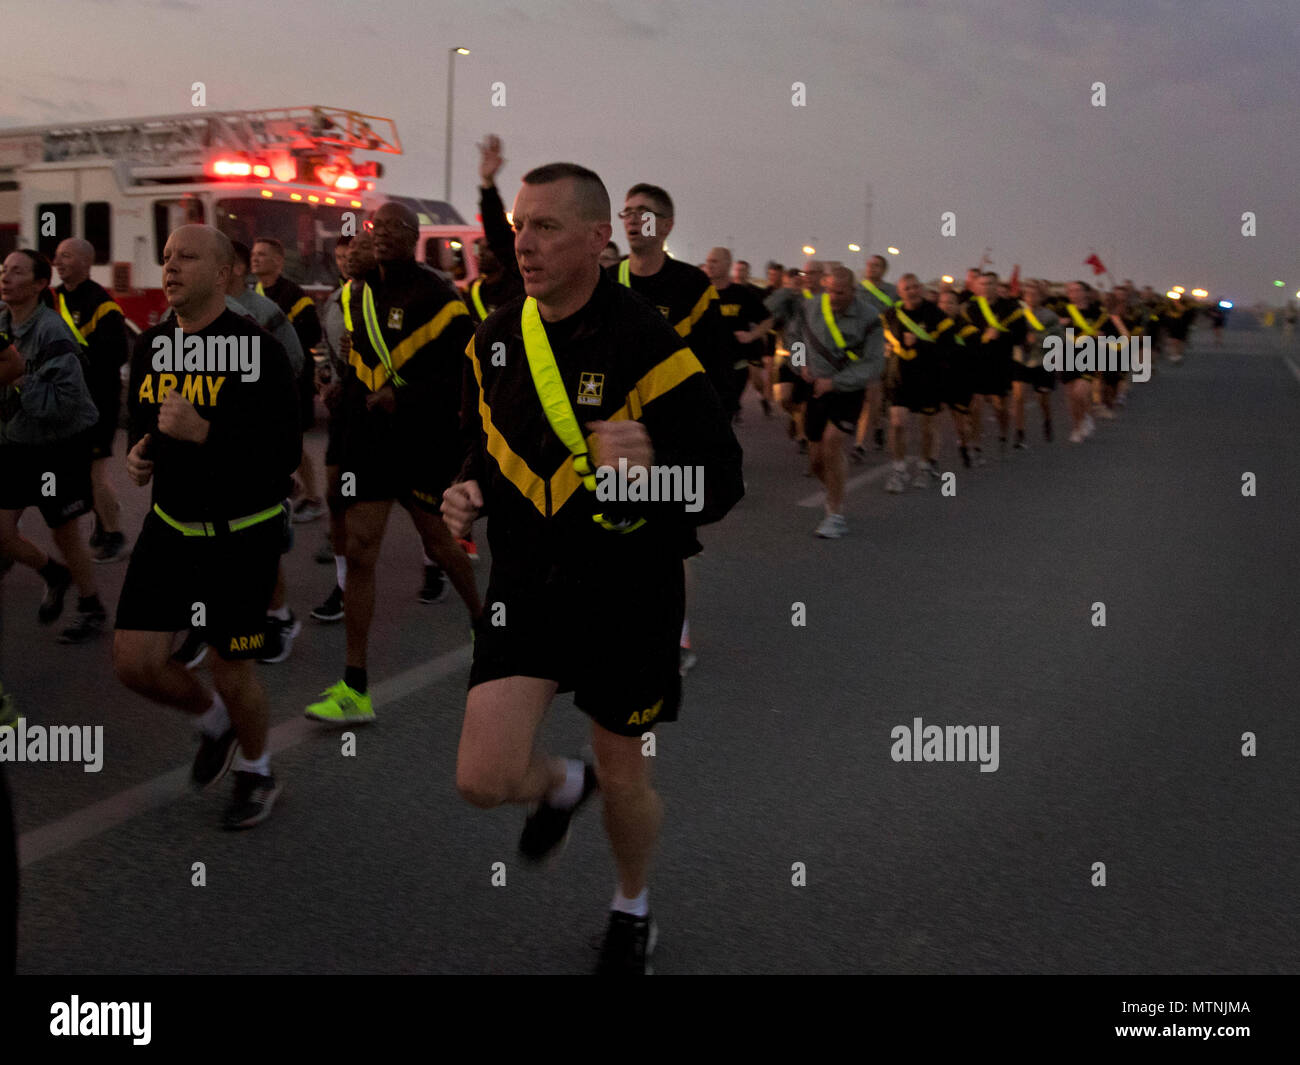 1st Sgt. Brian Jarvis, 316th Sustainment Command (Expeditionary) Headquarters and Headquarters Company 1st Sgt., calls cadences during a 5K at Camp Arifjan, Kuwait, Jan. 10, 2017. (U.S. Army Photo by Staff Sgt. Dalton Smith) - Stock Image